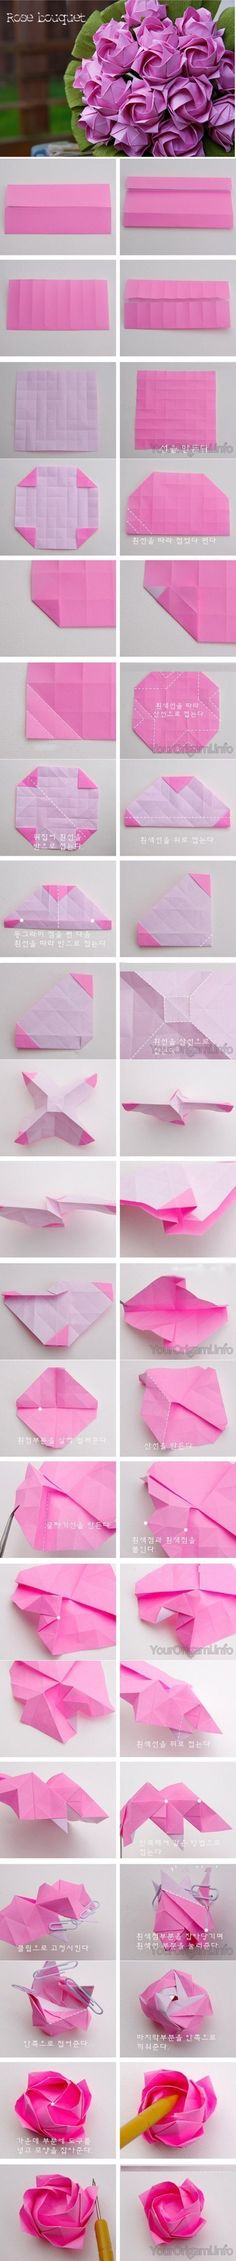 DIY-Beautiful-Origami-Paper-Roses tutorial